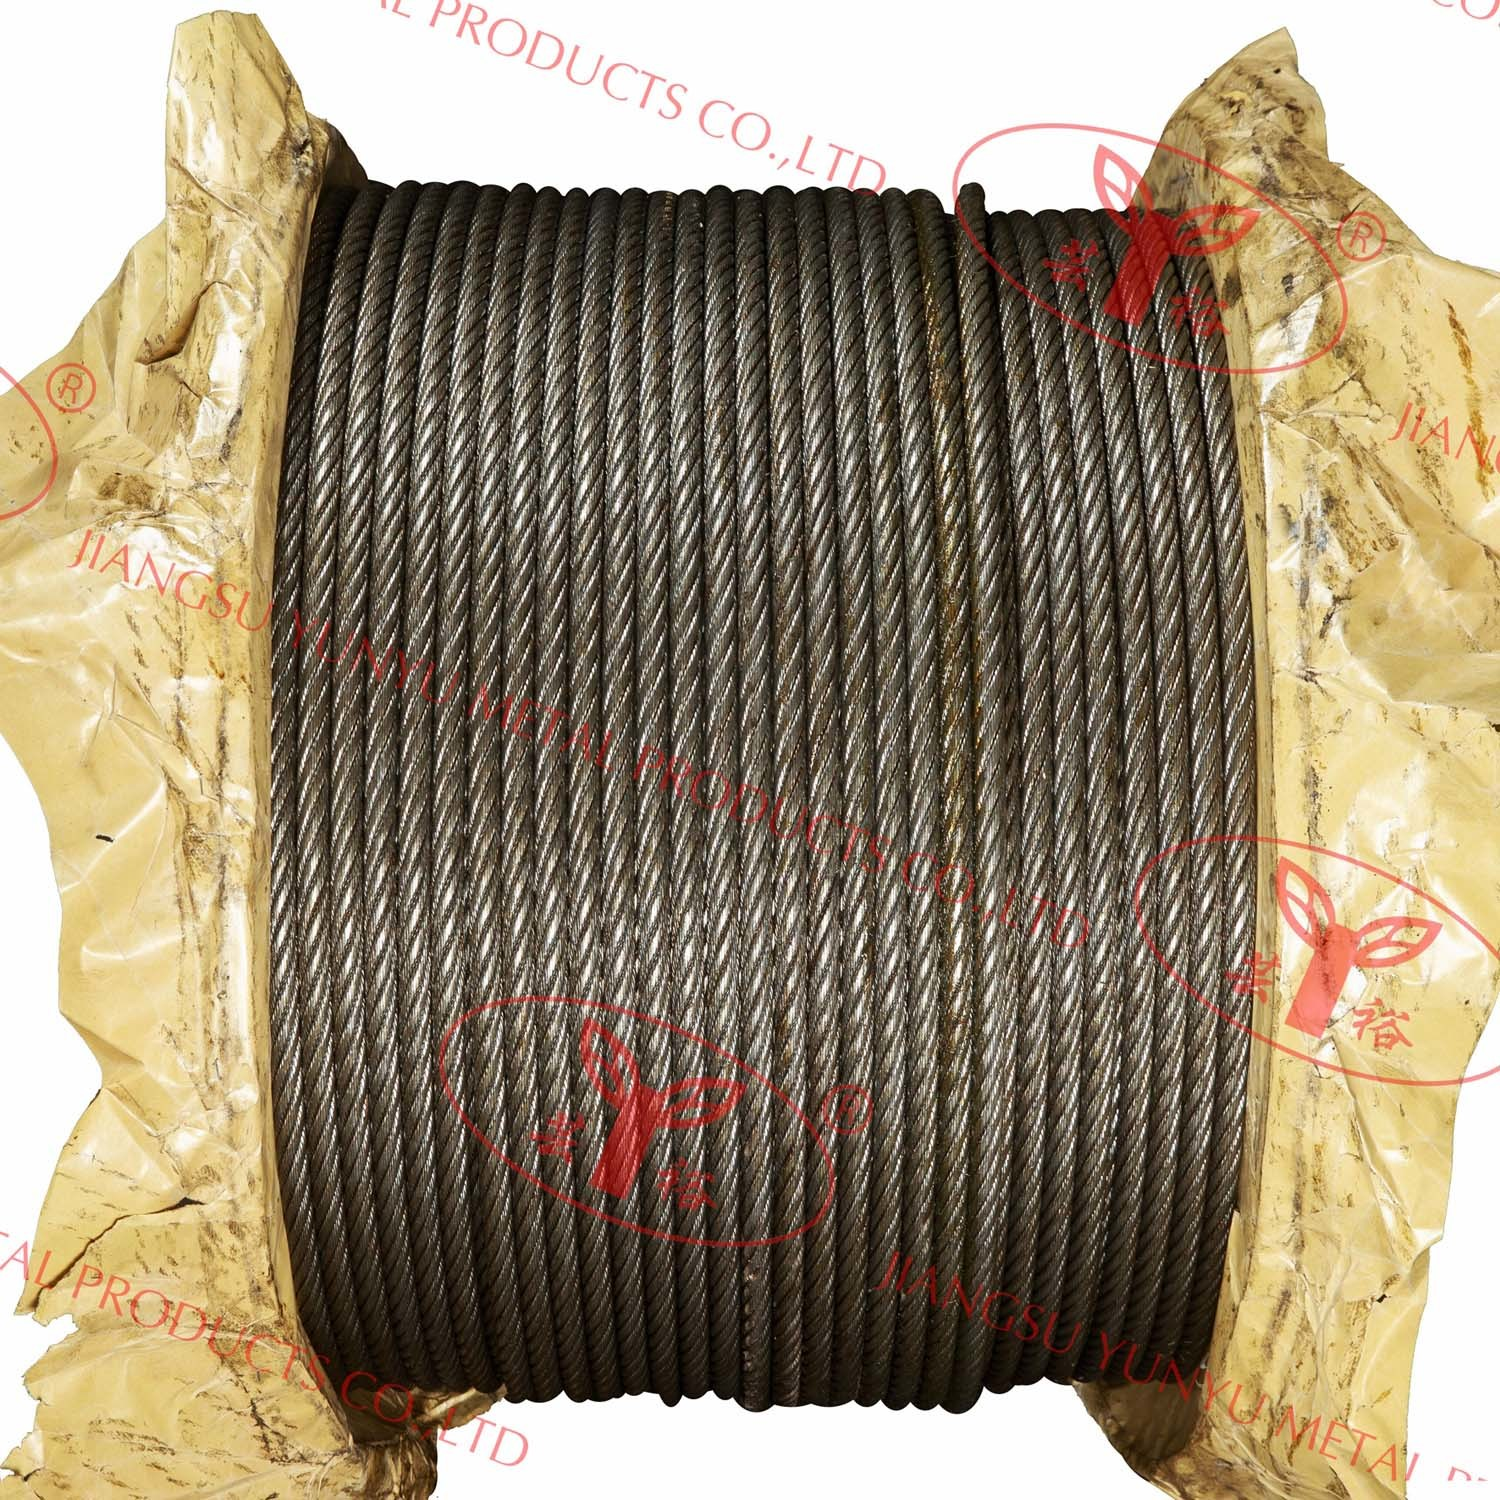 Compact Strand Steel Cable - 8xk26ws+Pwrc